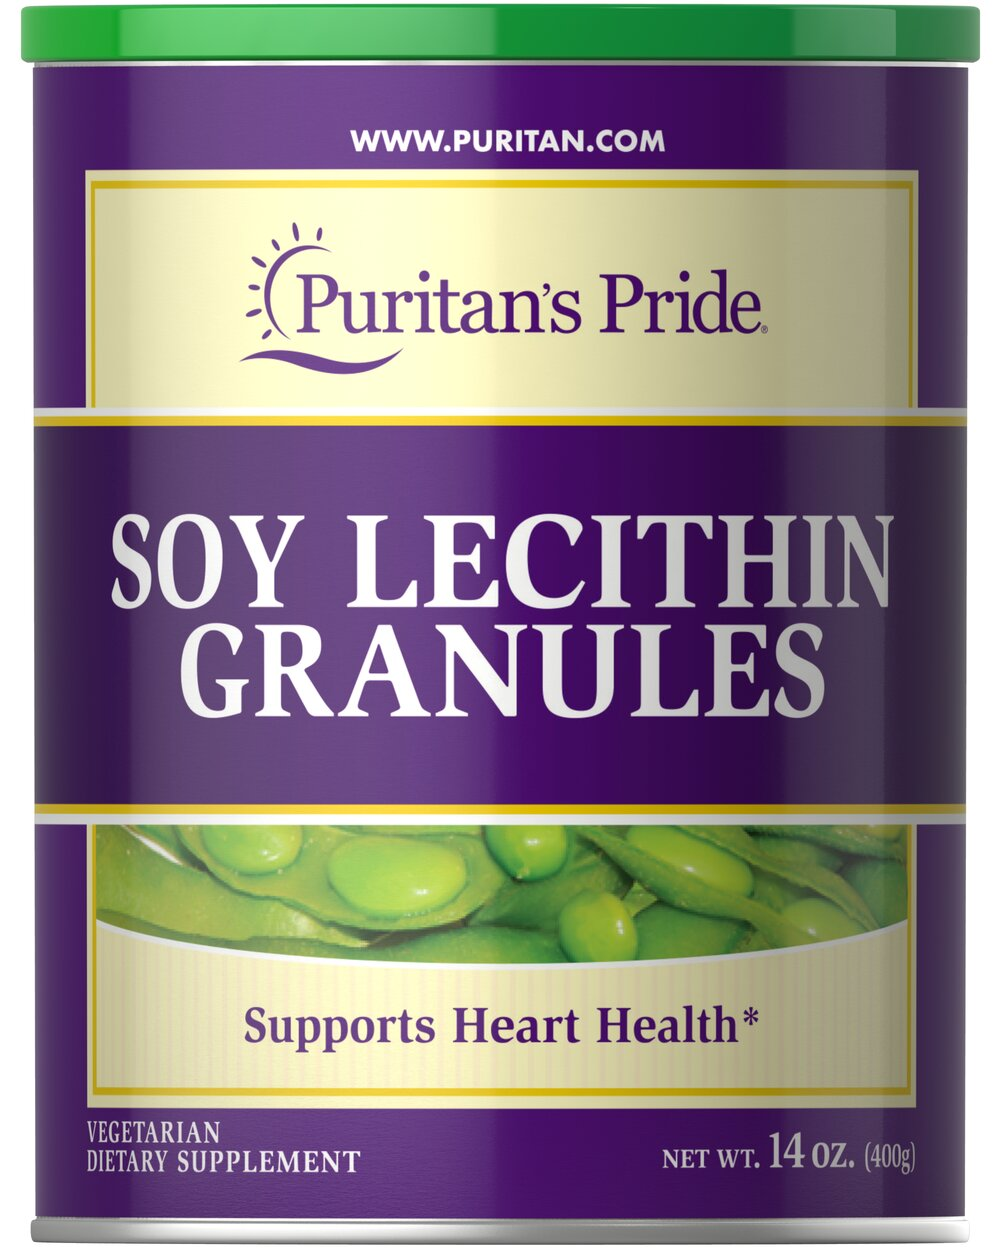 Soy Lecithin Granules 1680 mg <p>95% SOY PHOSPHATIDES </p><p>Finest Quality</p><p>Supports Mental Function & Nerve Cell Health**</p><p>Lecithin is an important natural source of choline, inositol, and linoleic acid. Choline and Inositol are vital components of all cell membranes, and play important roles in cell growth and function.**</p> 14 oz Granules 1680 mg $13.48